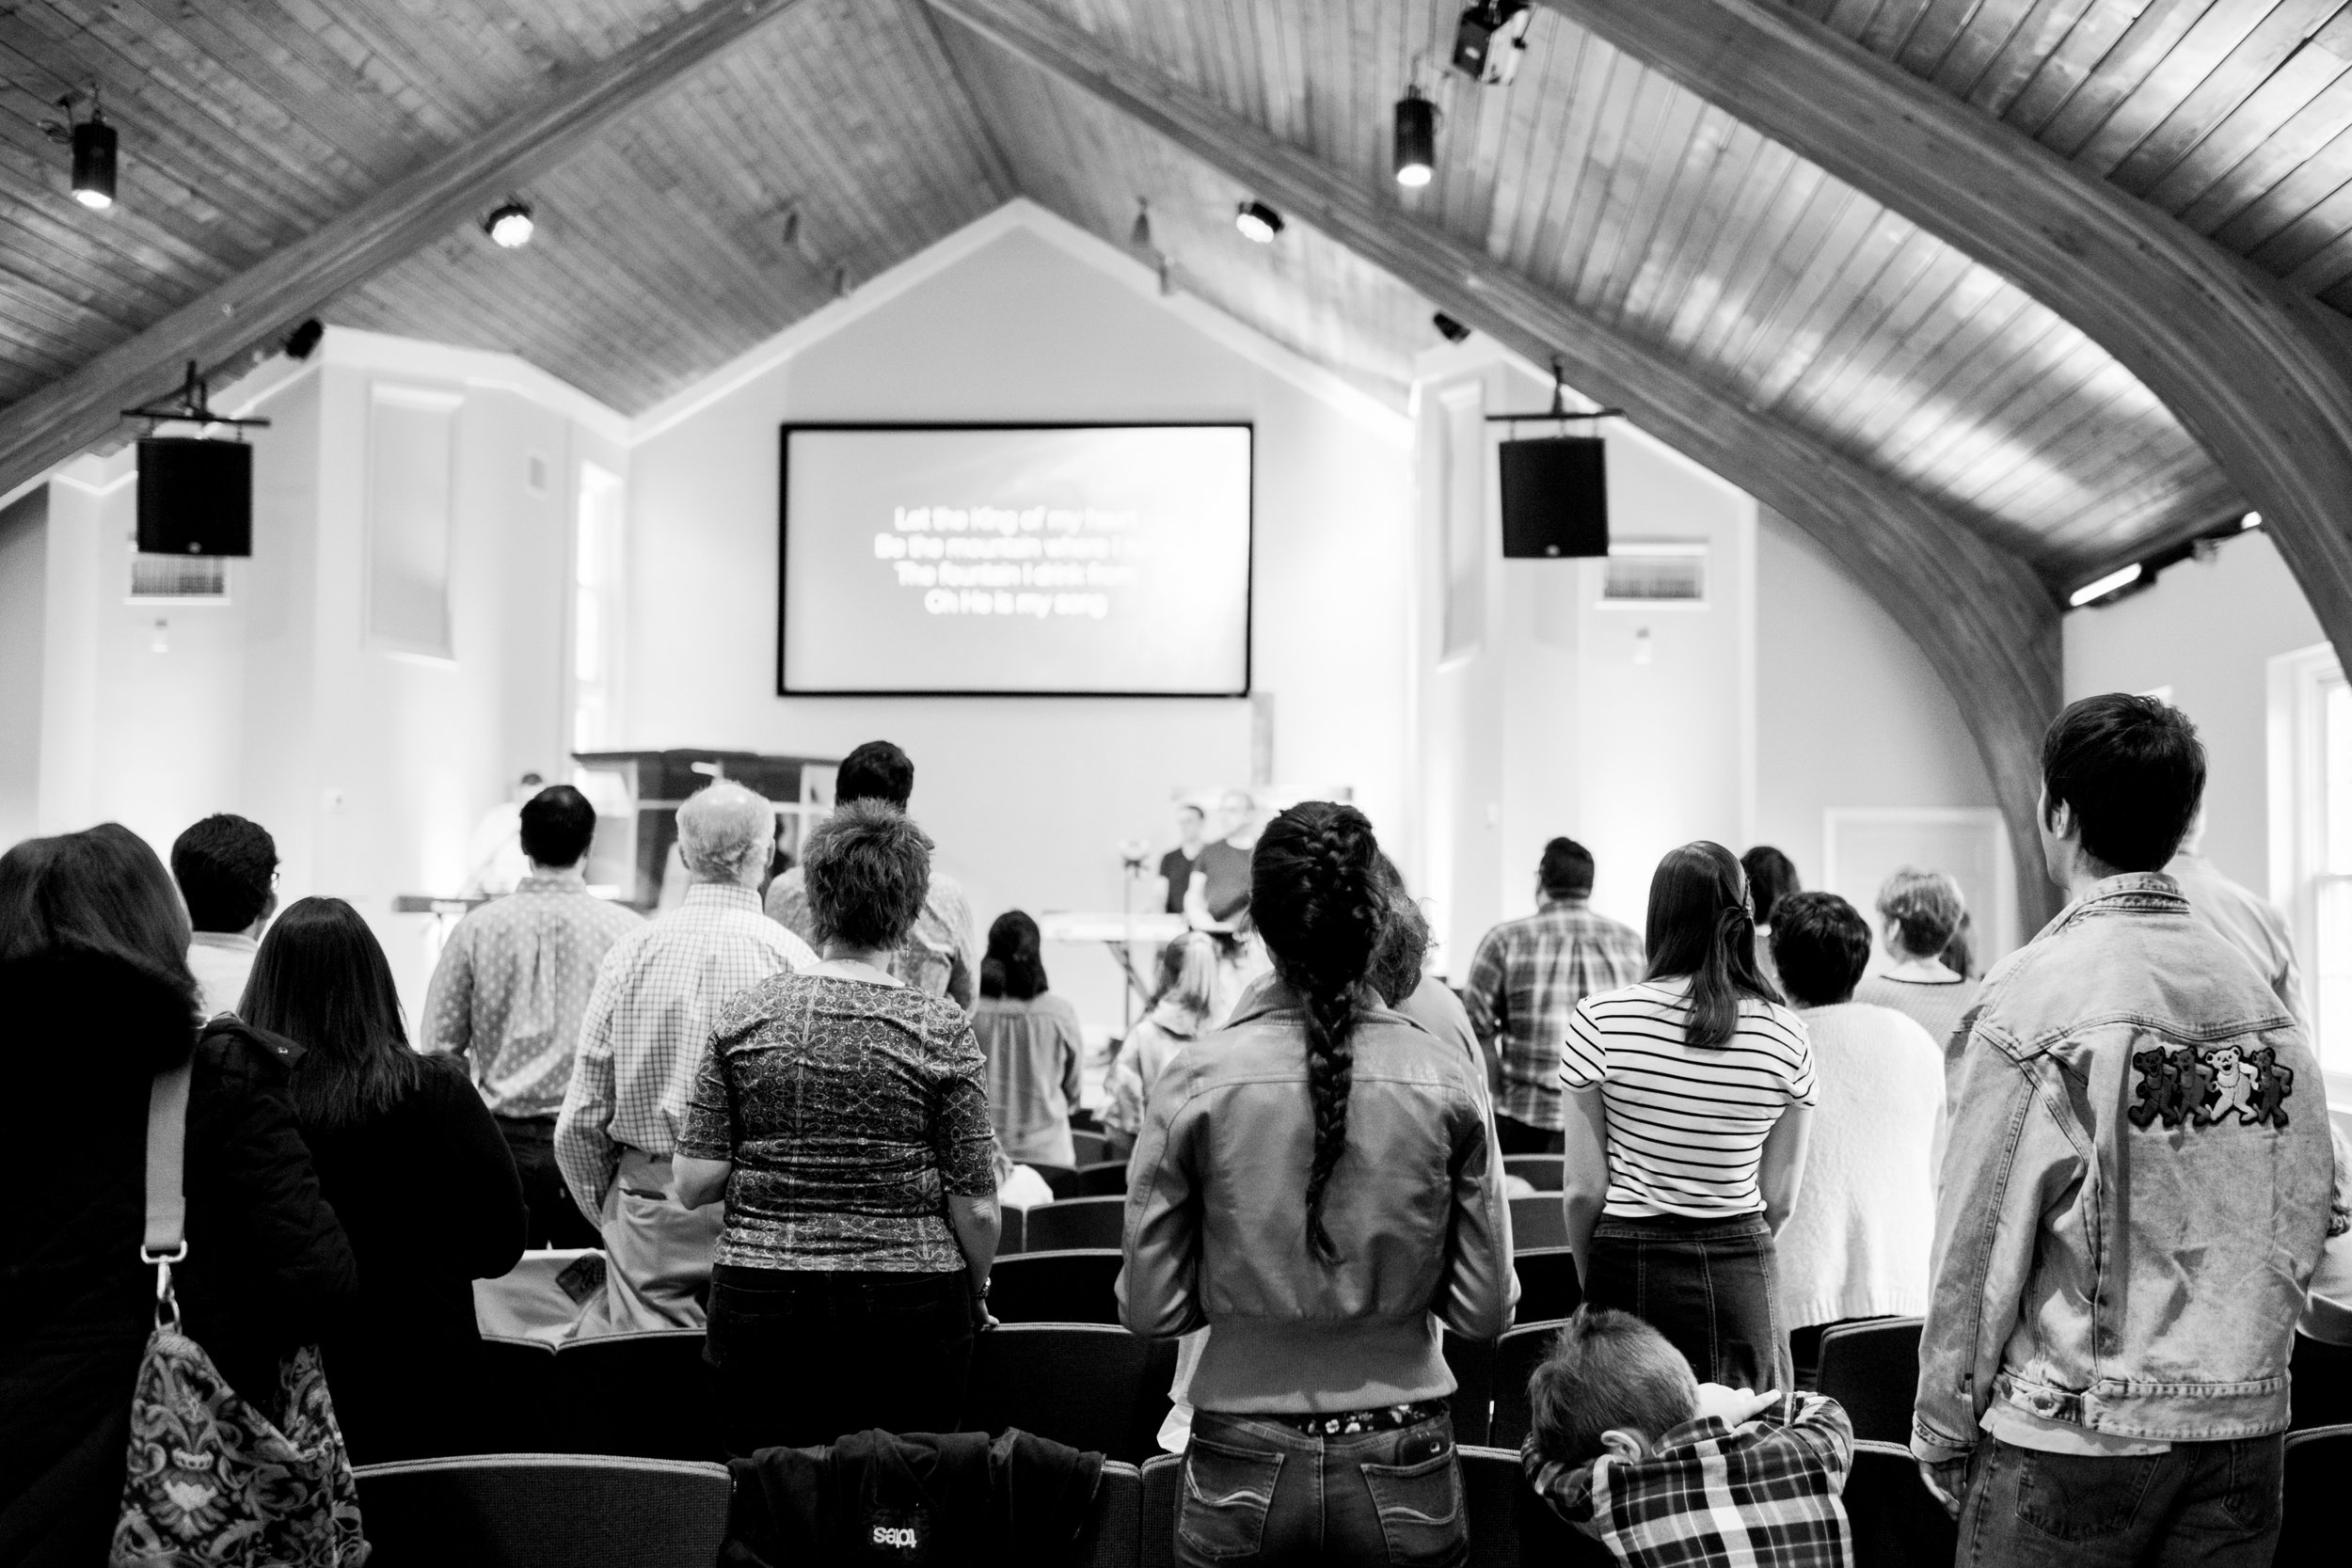 About - Find out about our church,our mission, and our beliefs.